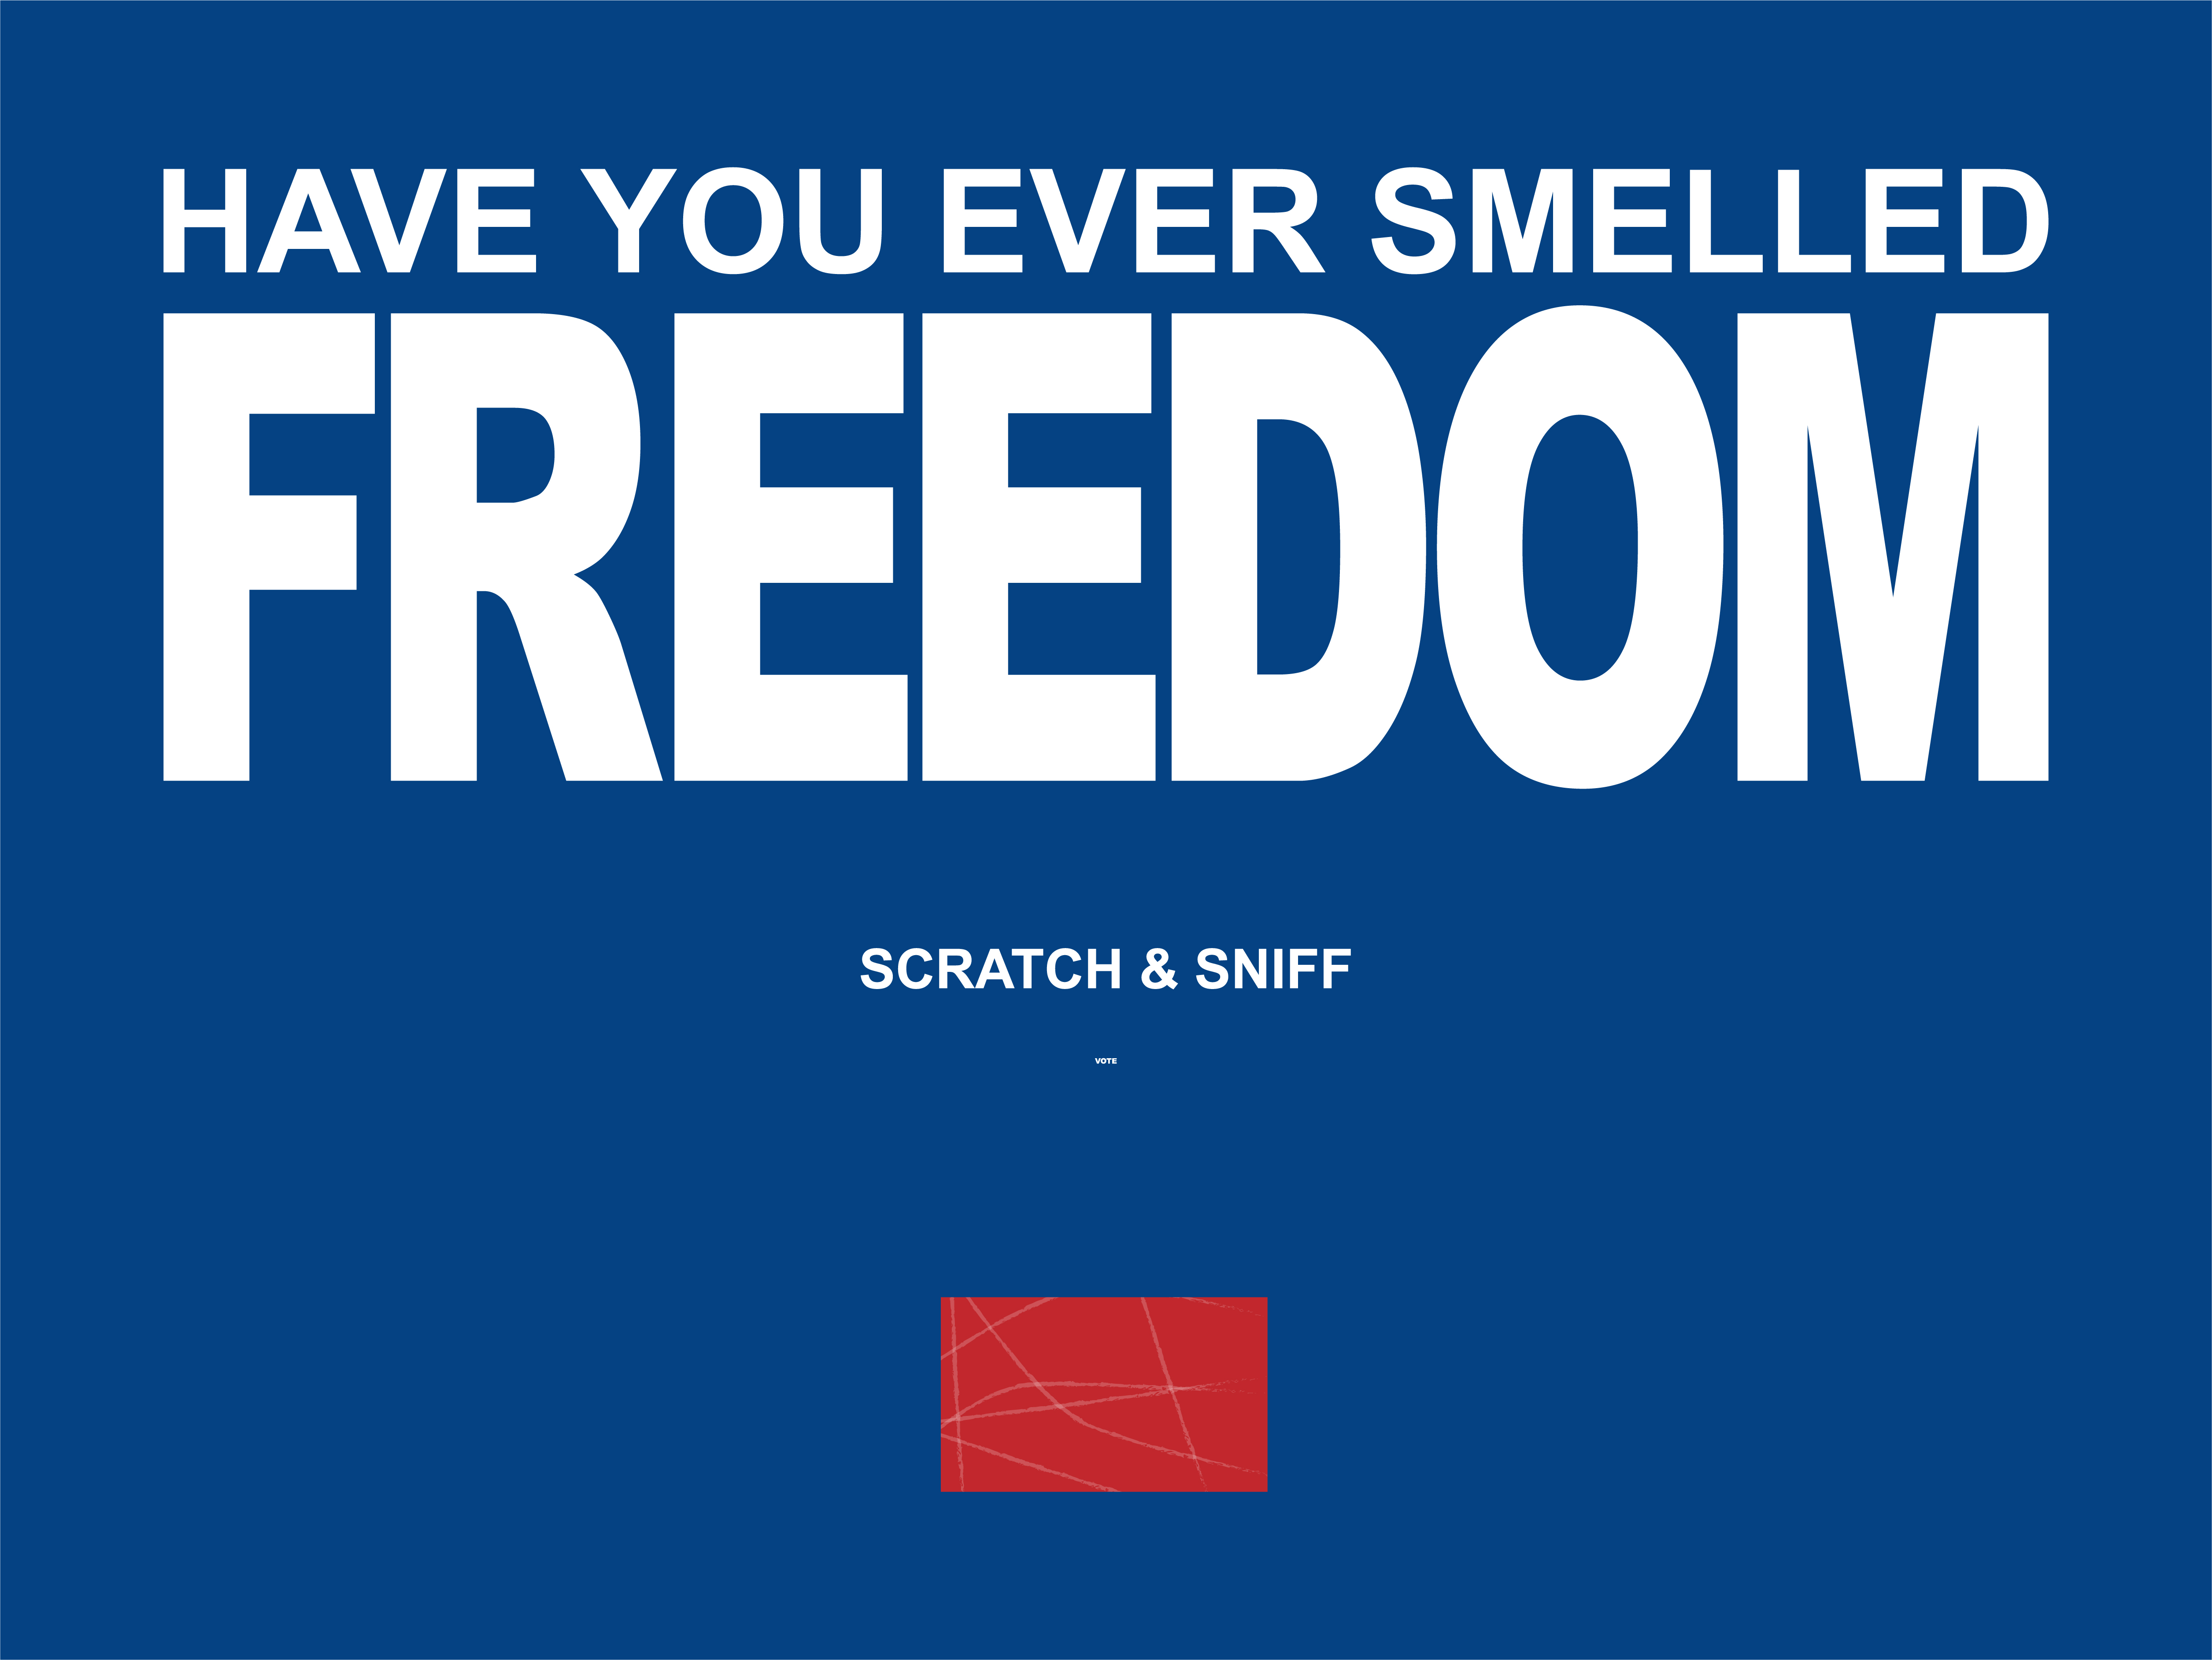 Scratch & Sniff the smell of freedom